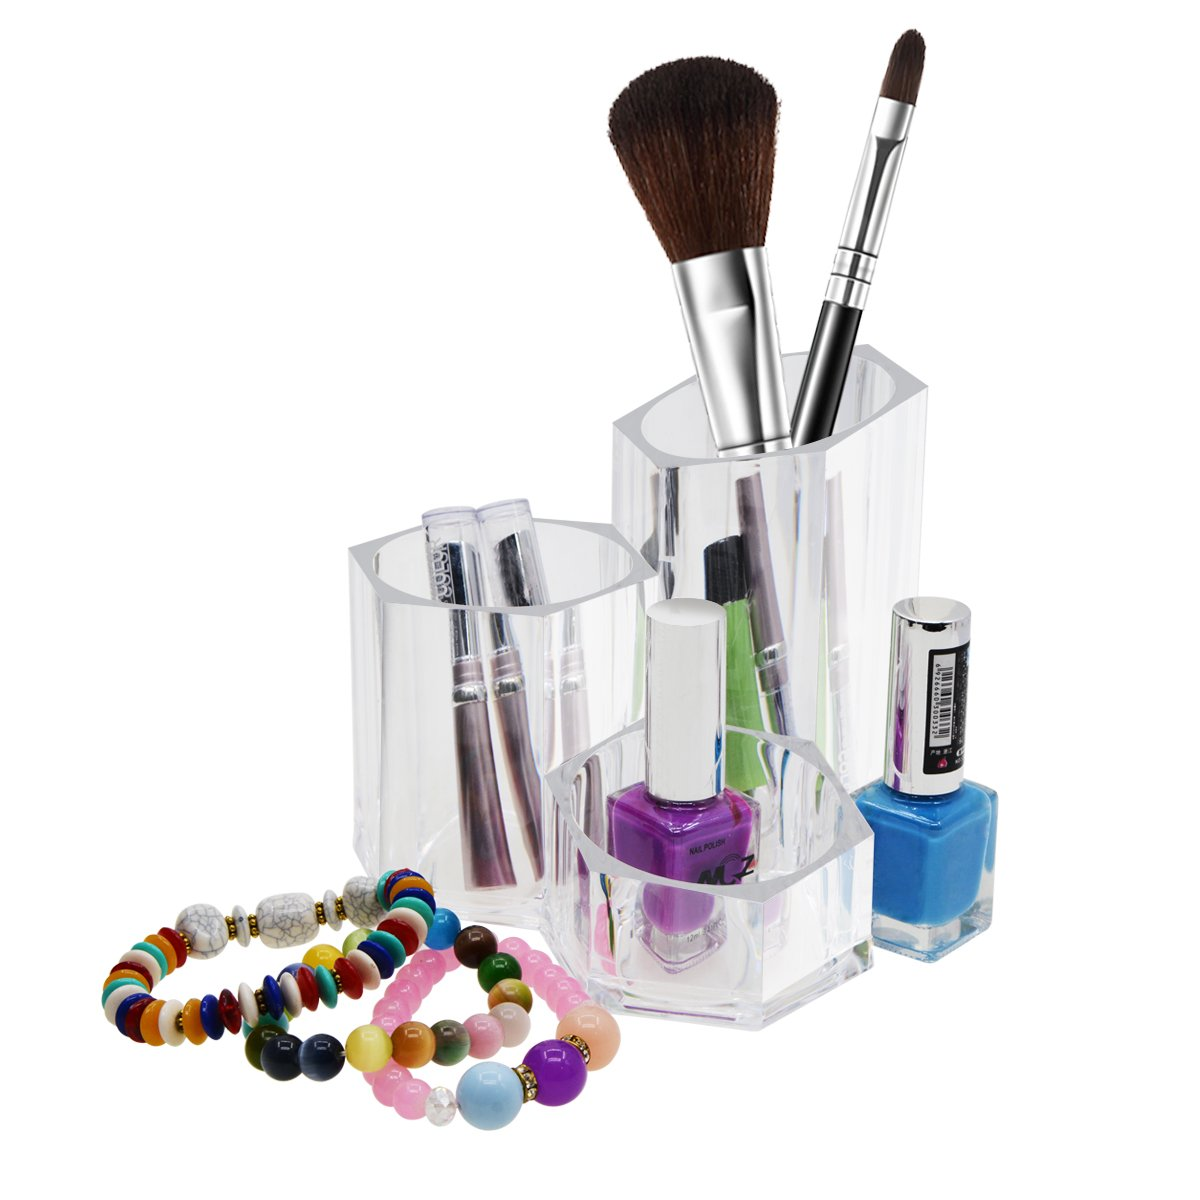 Saim Home Acrylic Vanity Organizer Storage with Trio Cup Perfect for Makeup Brushes Beauty Products Office Supplies